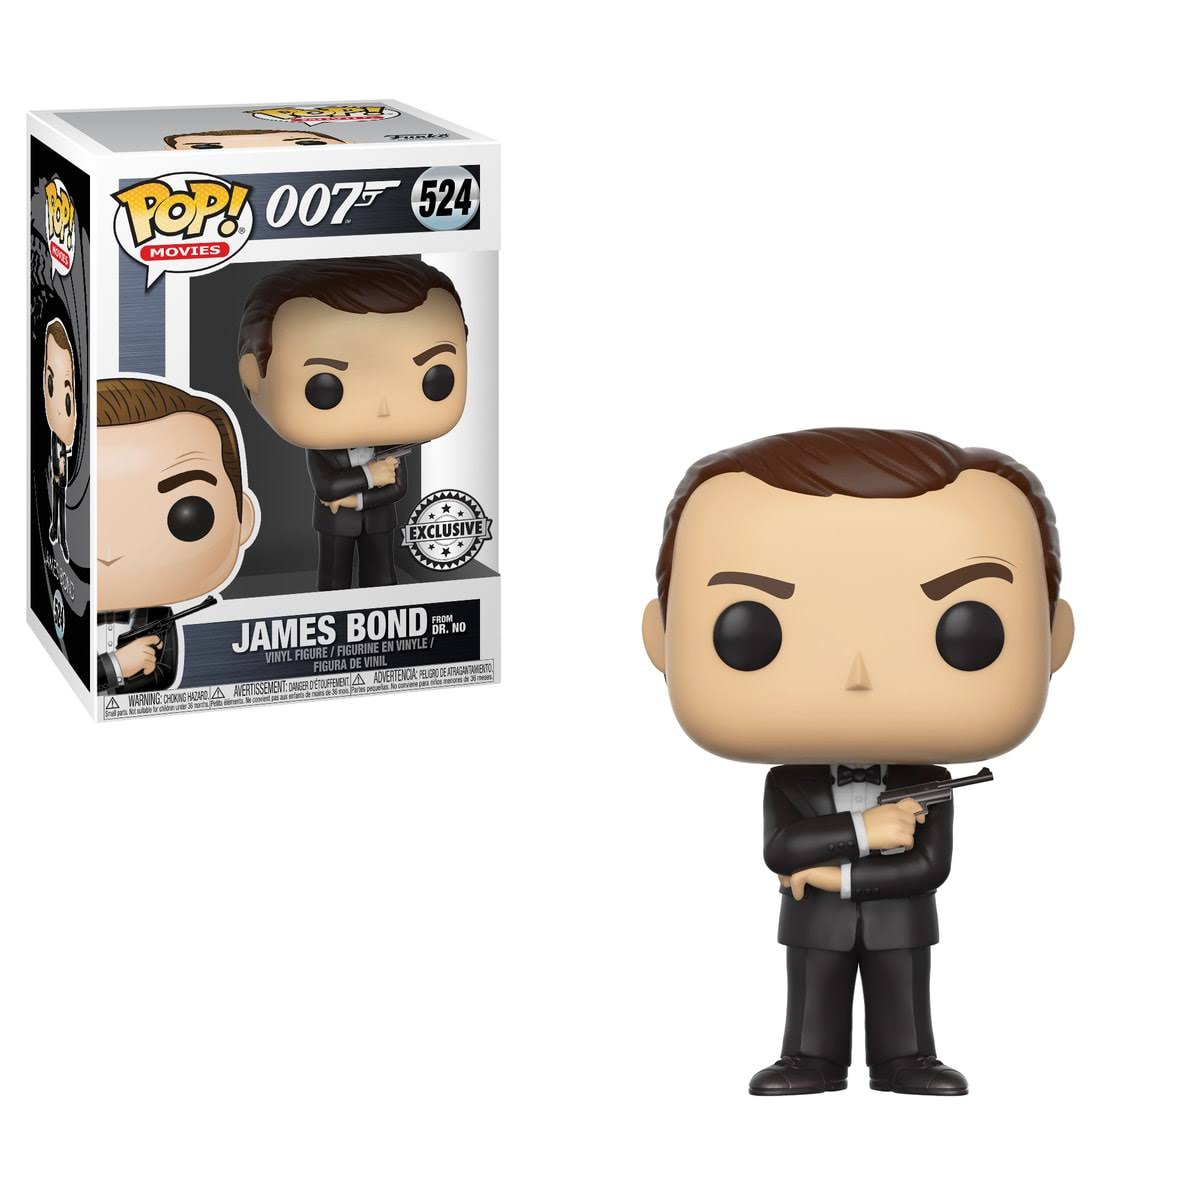 Funko Pop! Movies: James Bond Vinyl Figure - Sean Connery